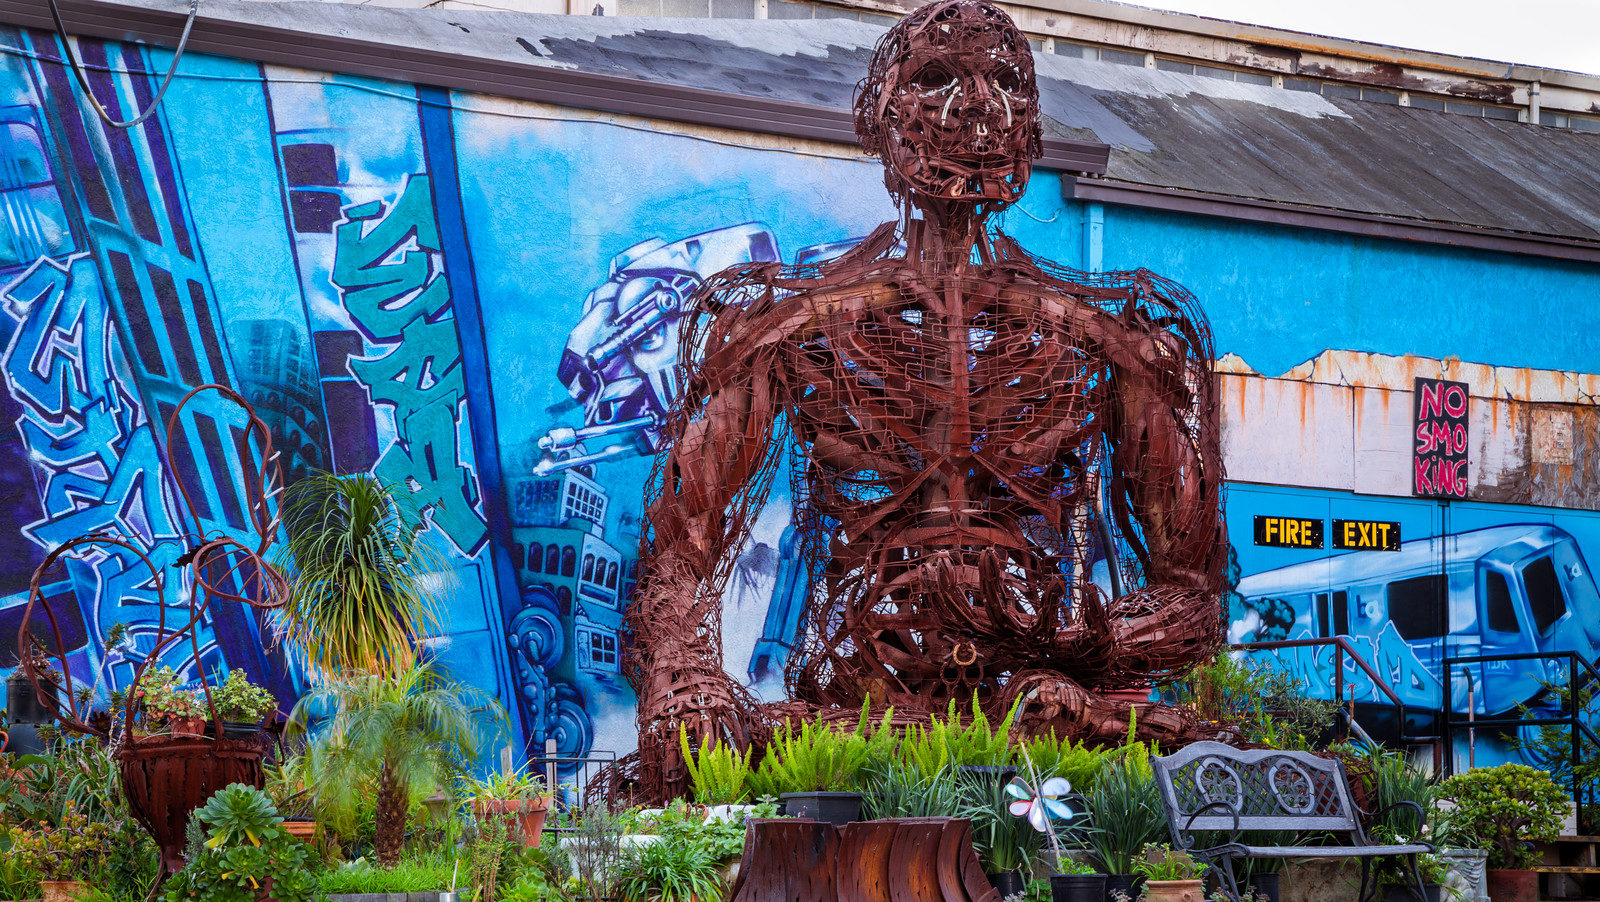 Oxidized metal sculpture of a giant-sized torso in front of a colorgully painted wall lined with potted plants.